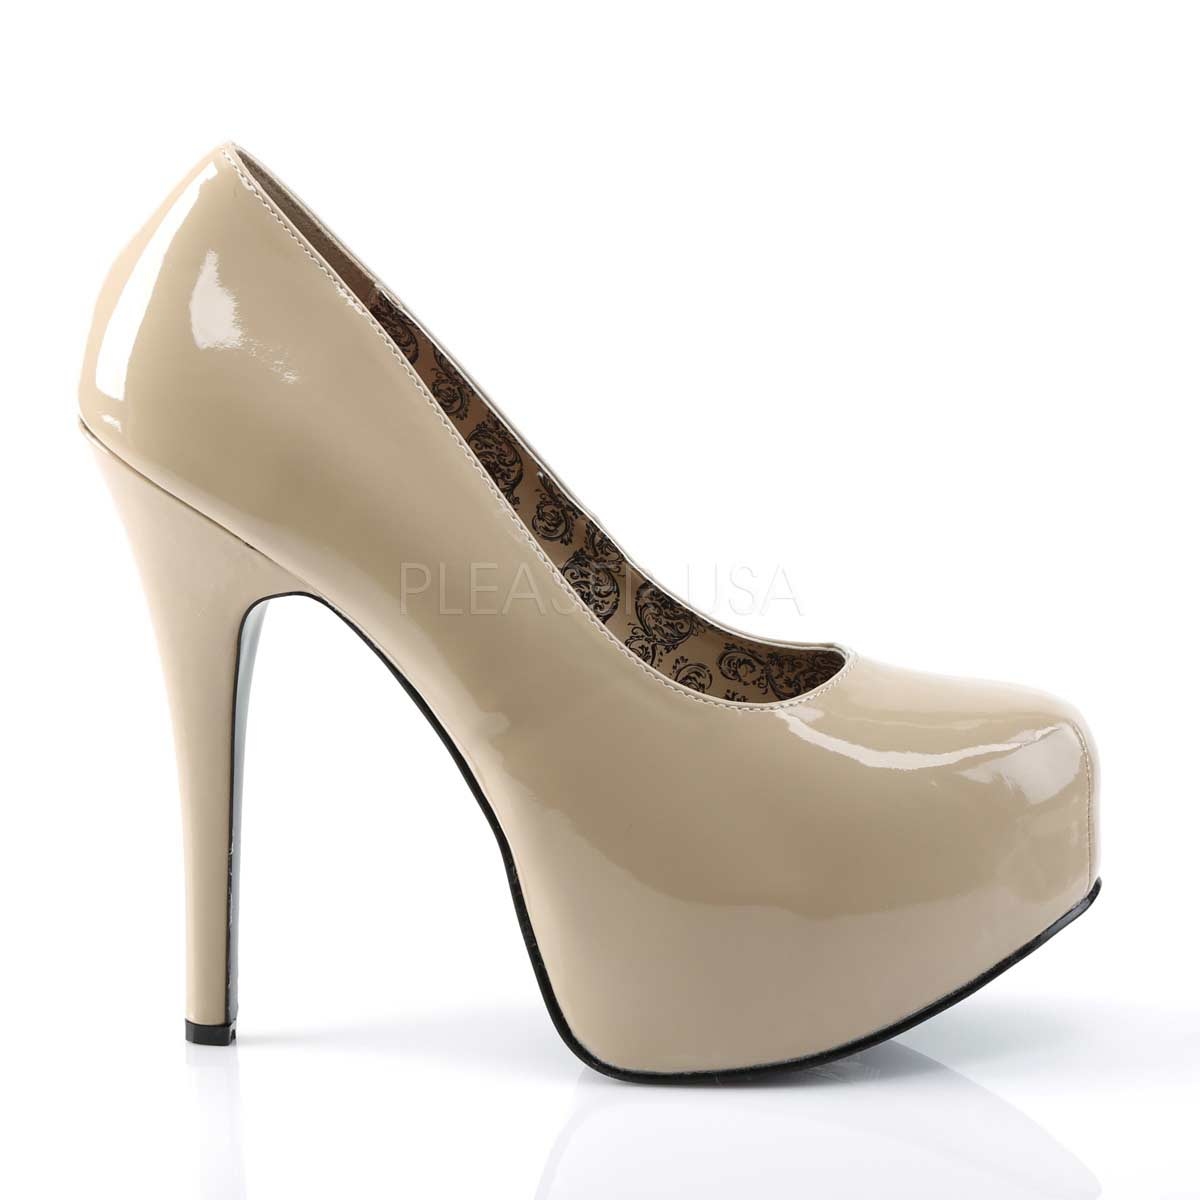 PLEASER PINK LABEL TEEZE-06W CREAM FAUX LEATHER WIDE WIDTH FITTING COURT SHOES